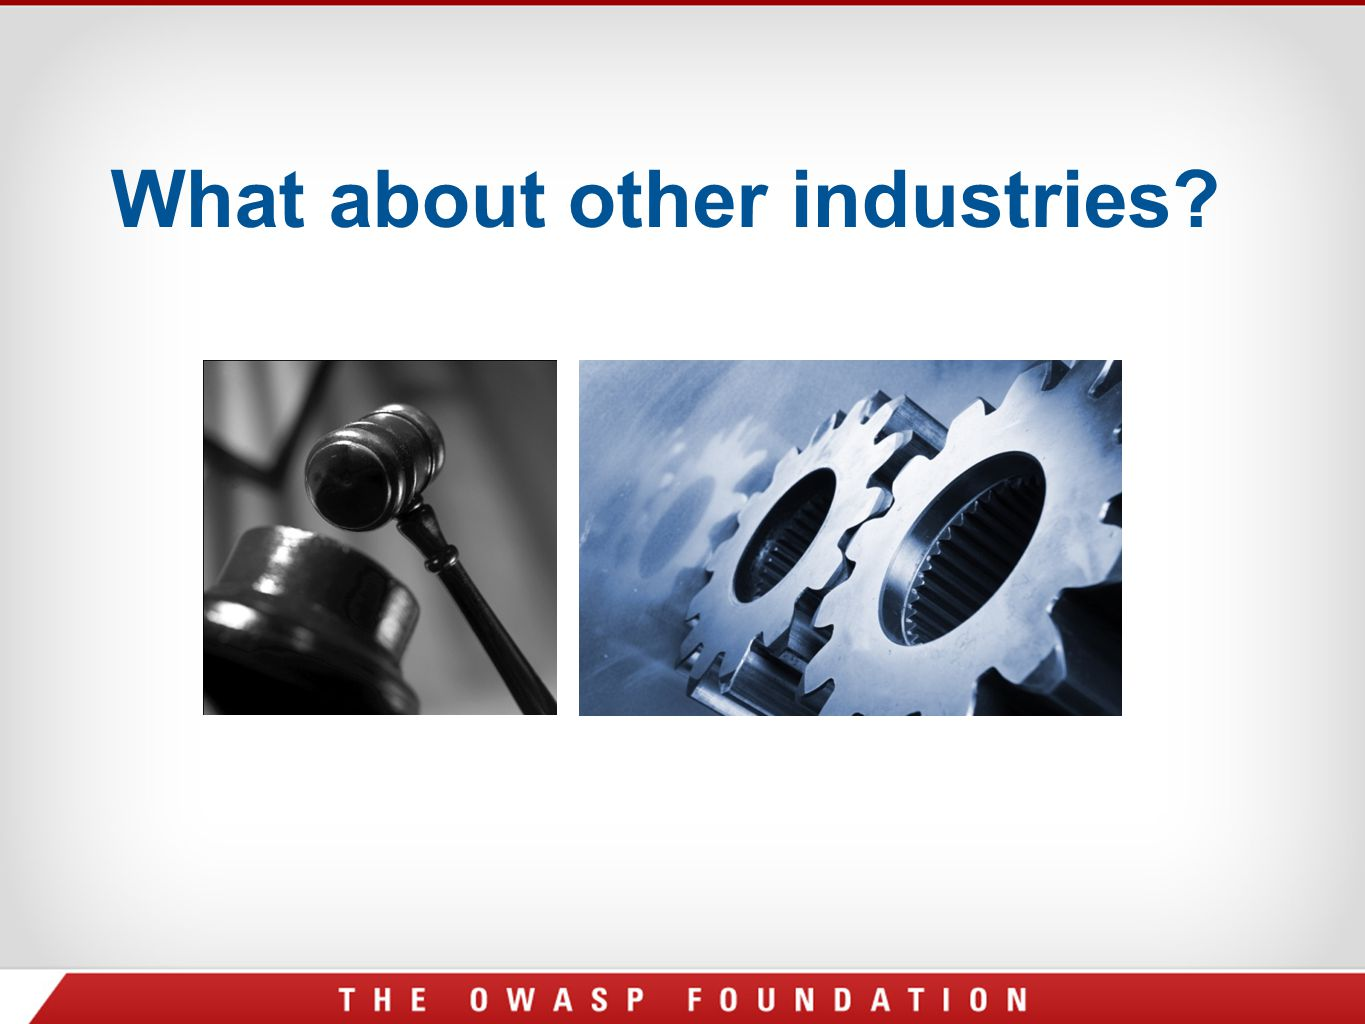 What about other industries